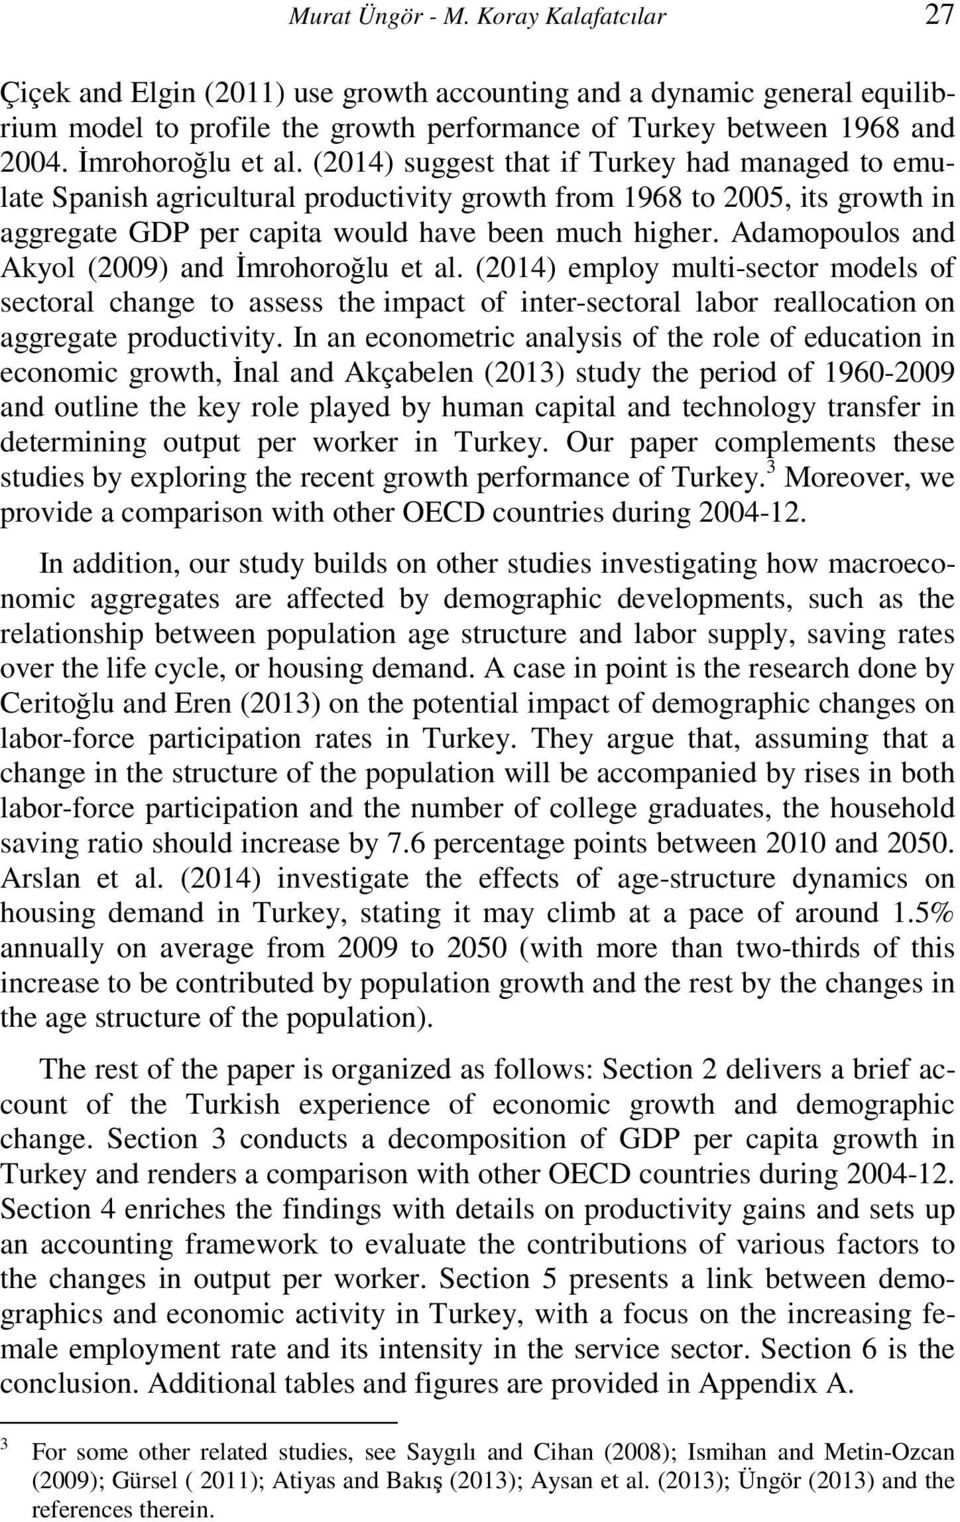 Adamopoulos and Akyol (2009) and Đmrohoroğlu et al. (2014) employ multi-sector models of sectoral change to assess the impact of inter-sectoral labor reallocation on aggregate productivity.